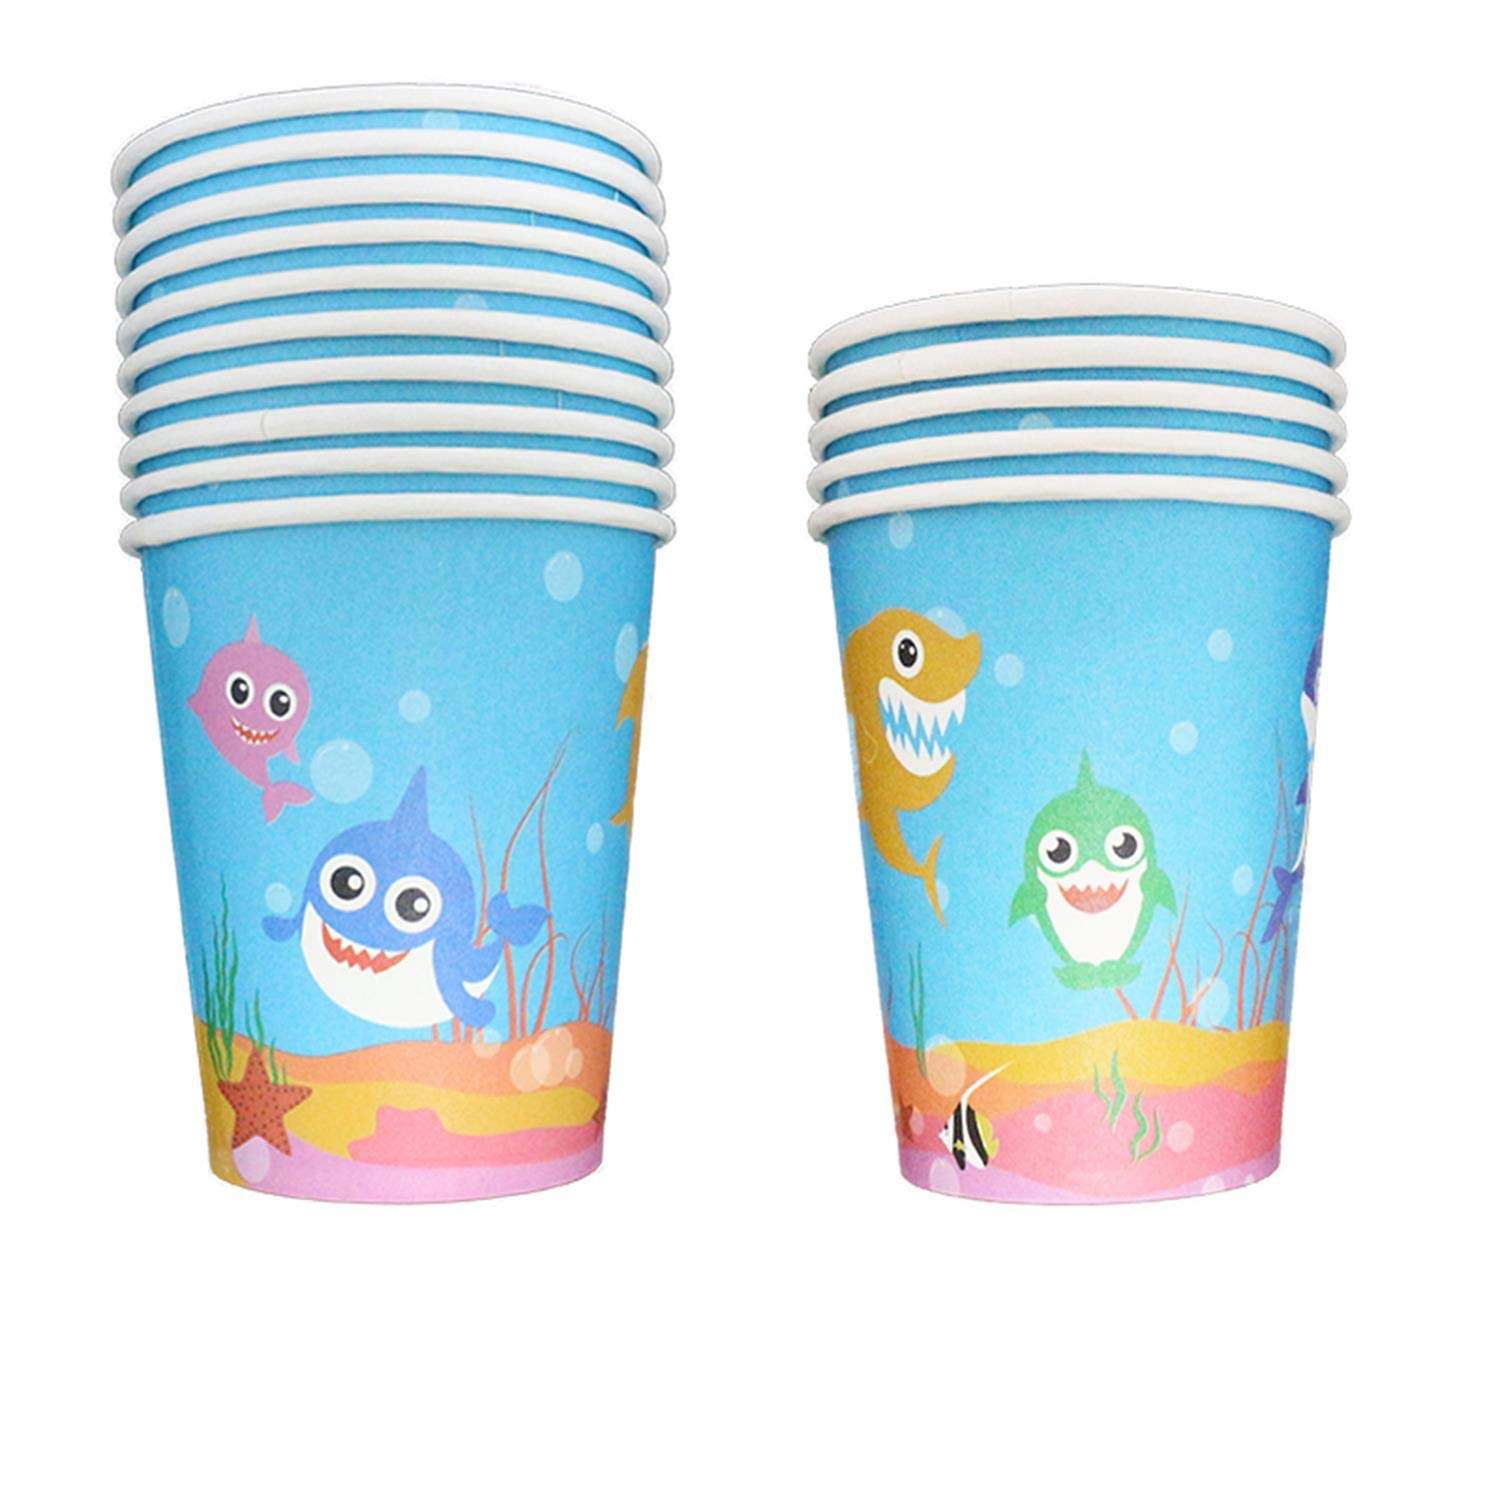 32 Pack Baby Cute Shark Cups Straws with Decoration for Birthday Party Supplies Disposable Paper 9oz Cup